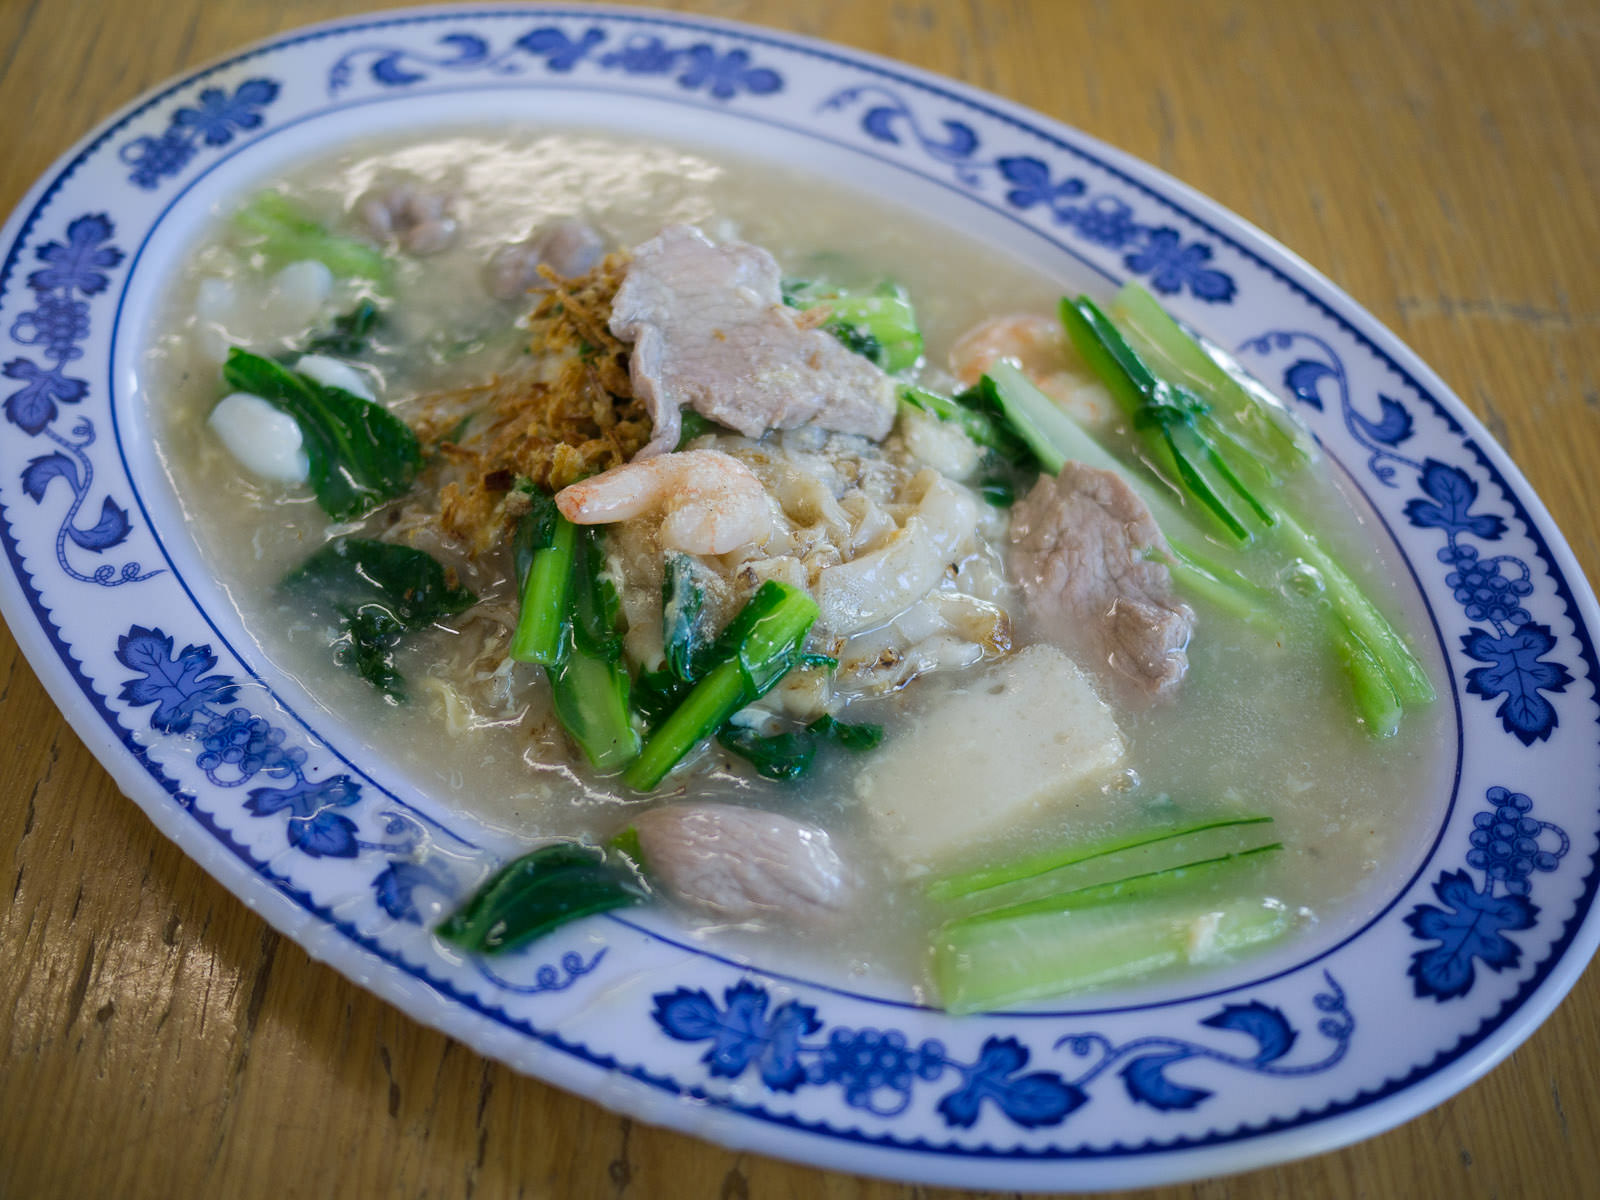 Hor fun with egg sauce